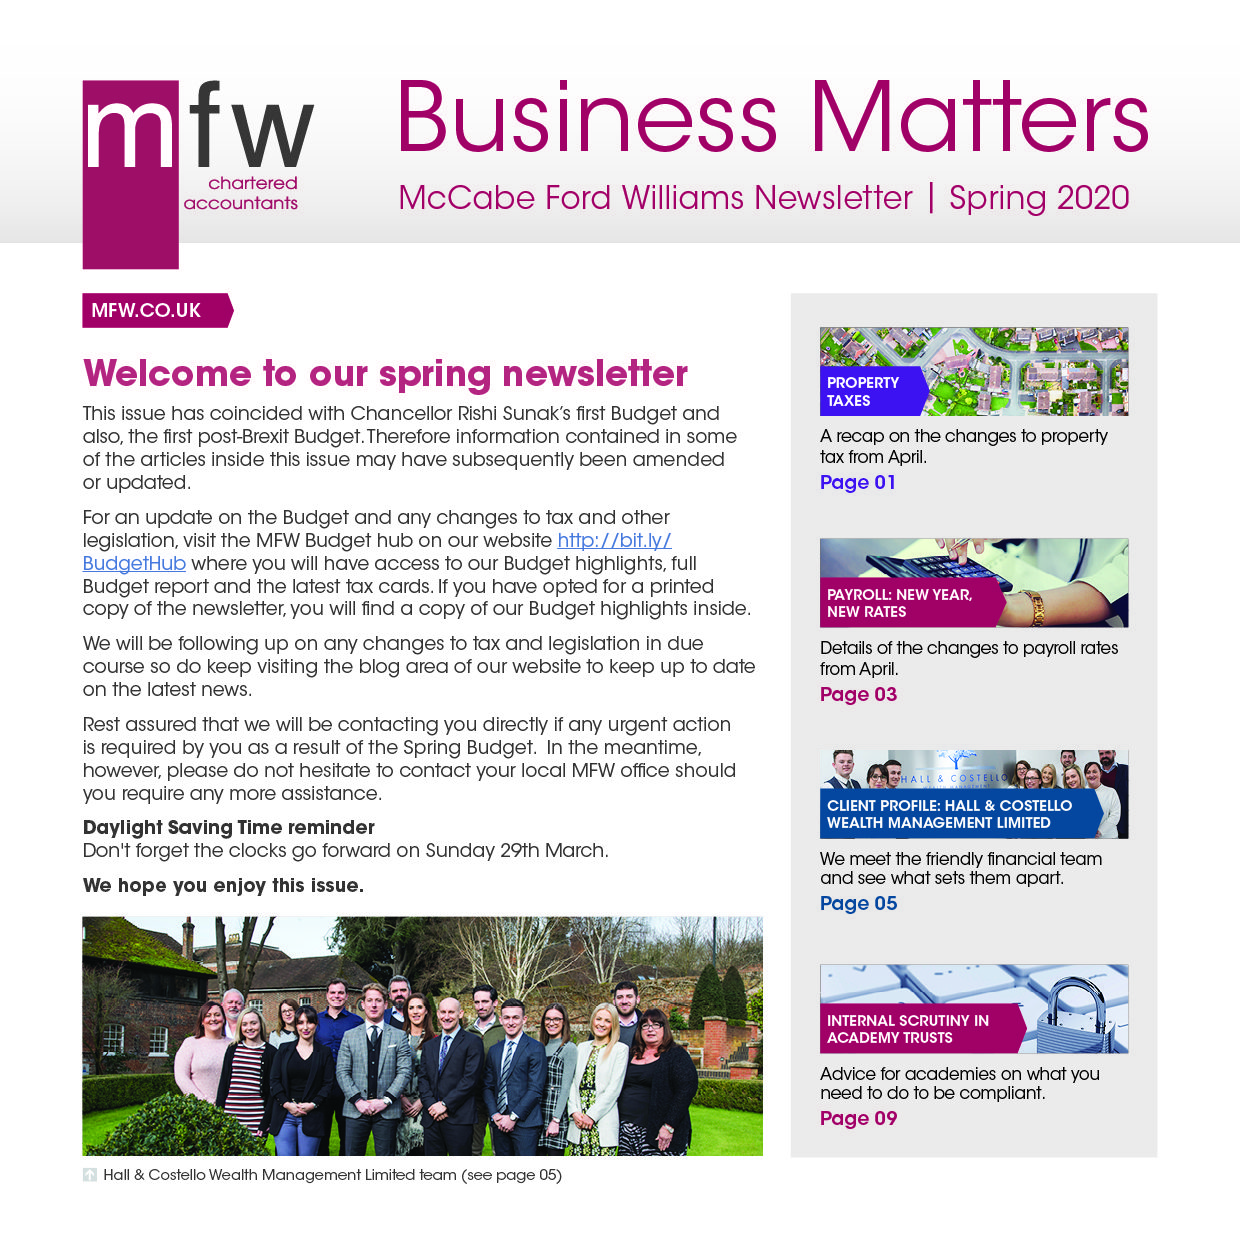 Business Matters newsletter spring 2020